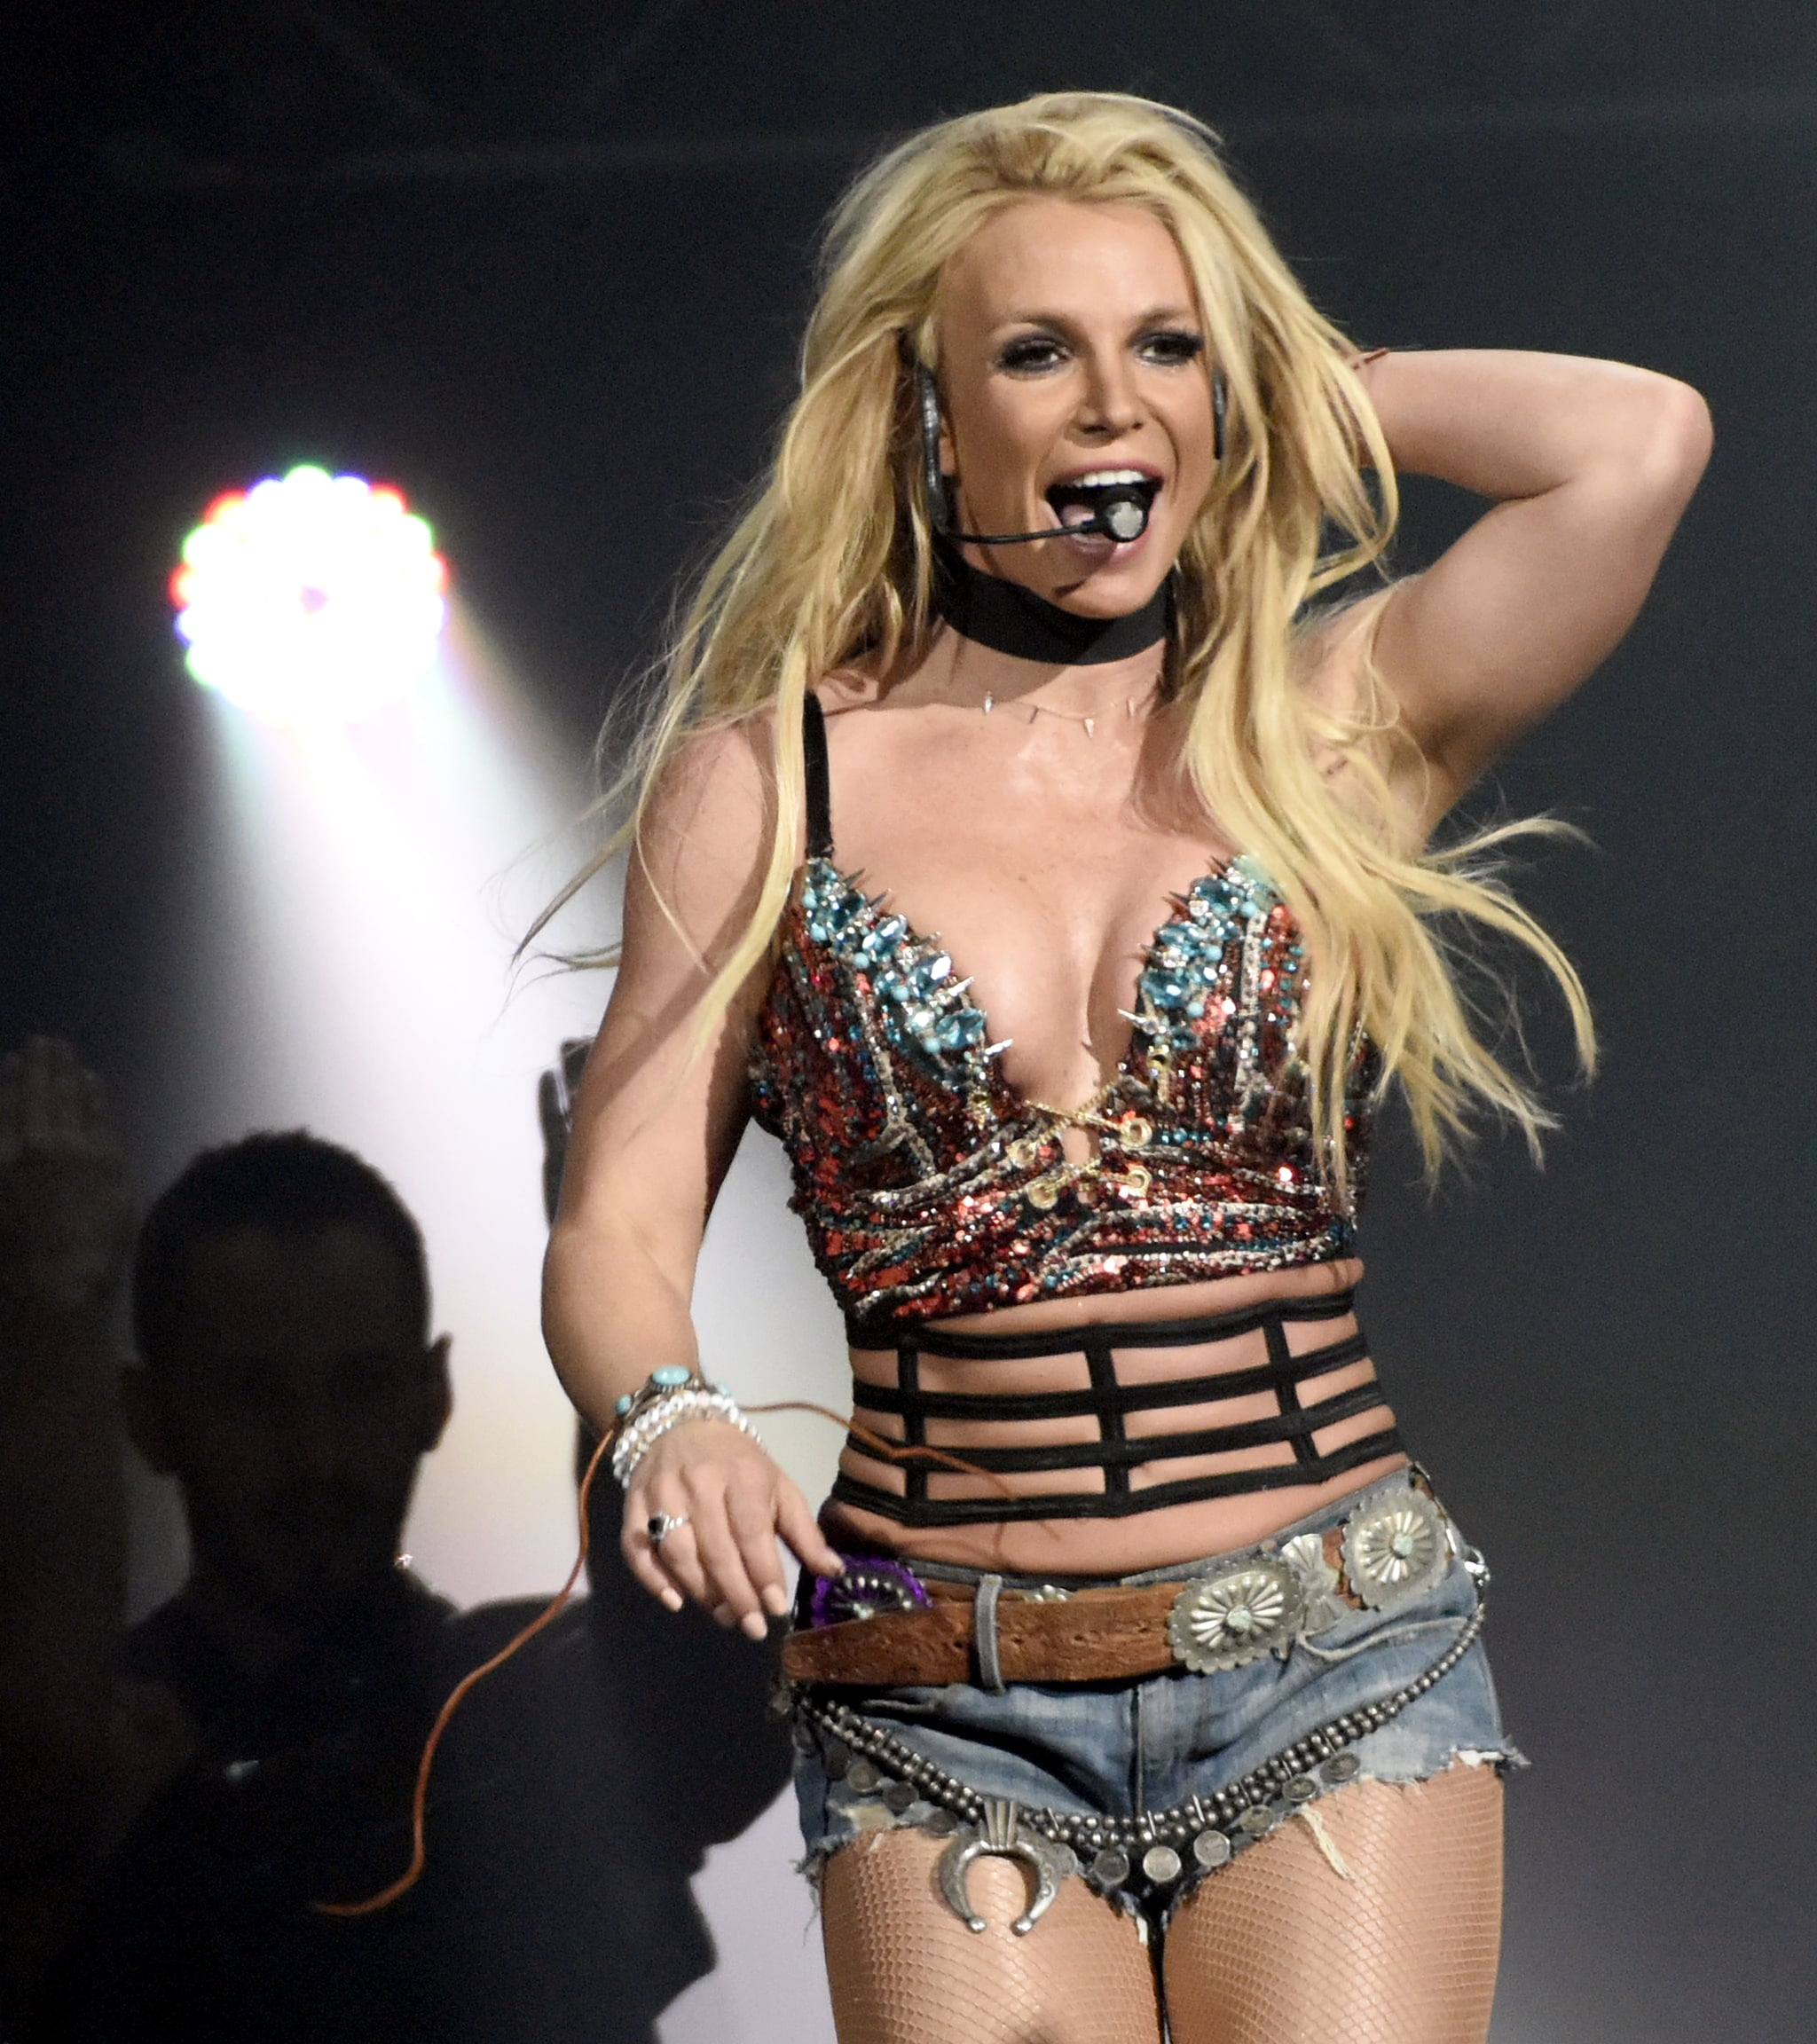 Britney Spears to Perform at New Years' Rockin' Eve With Ryan Seacrest